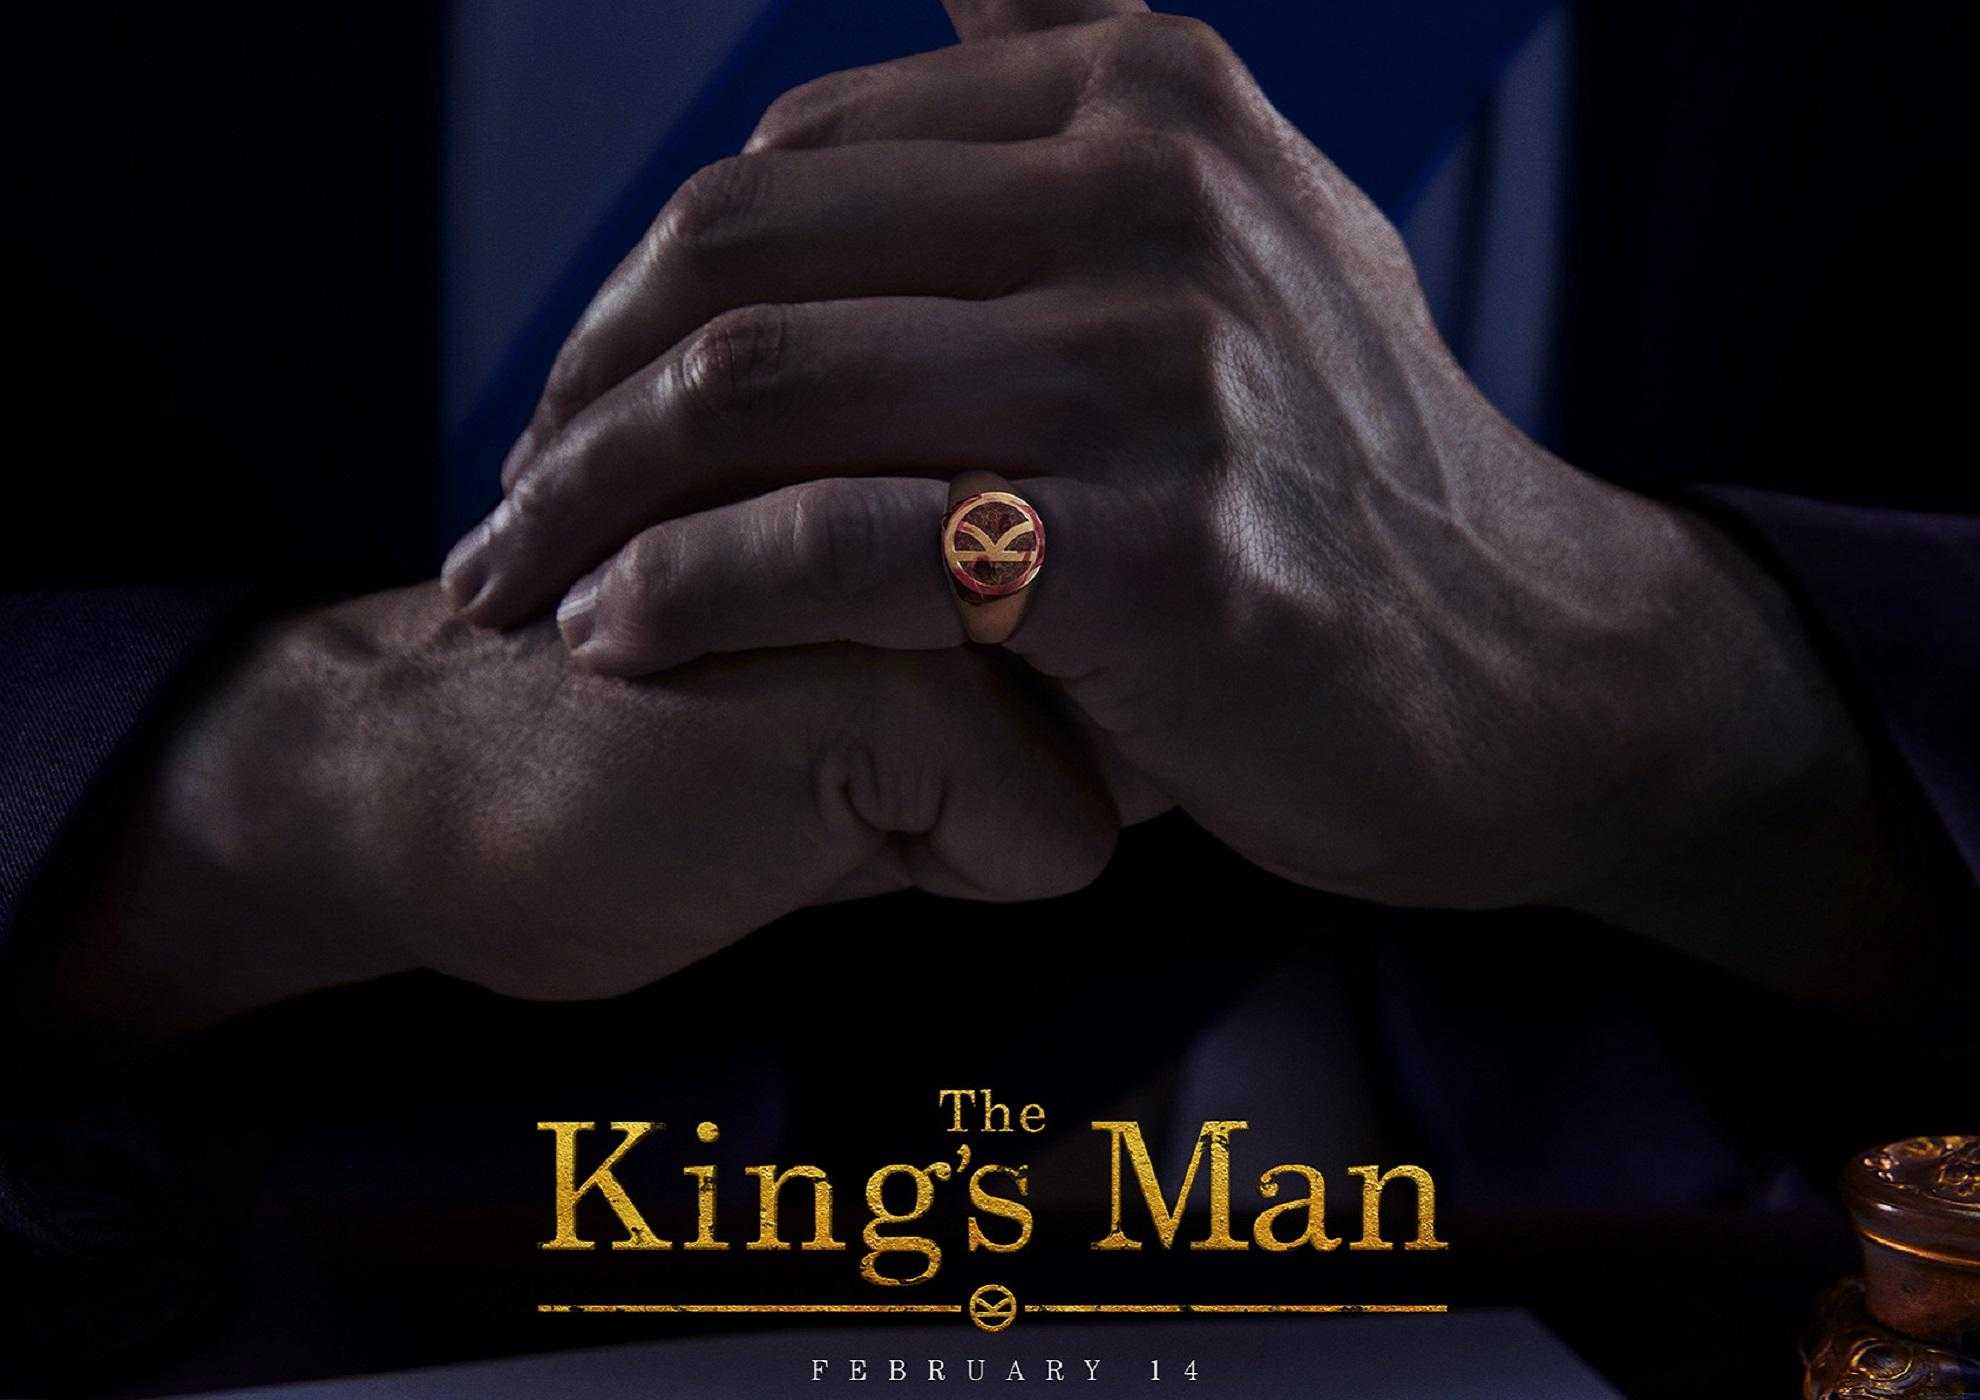 The King's Man cover